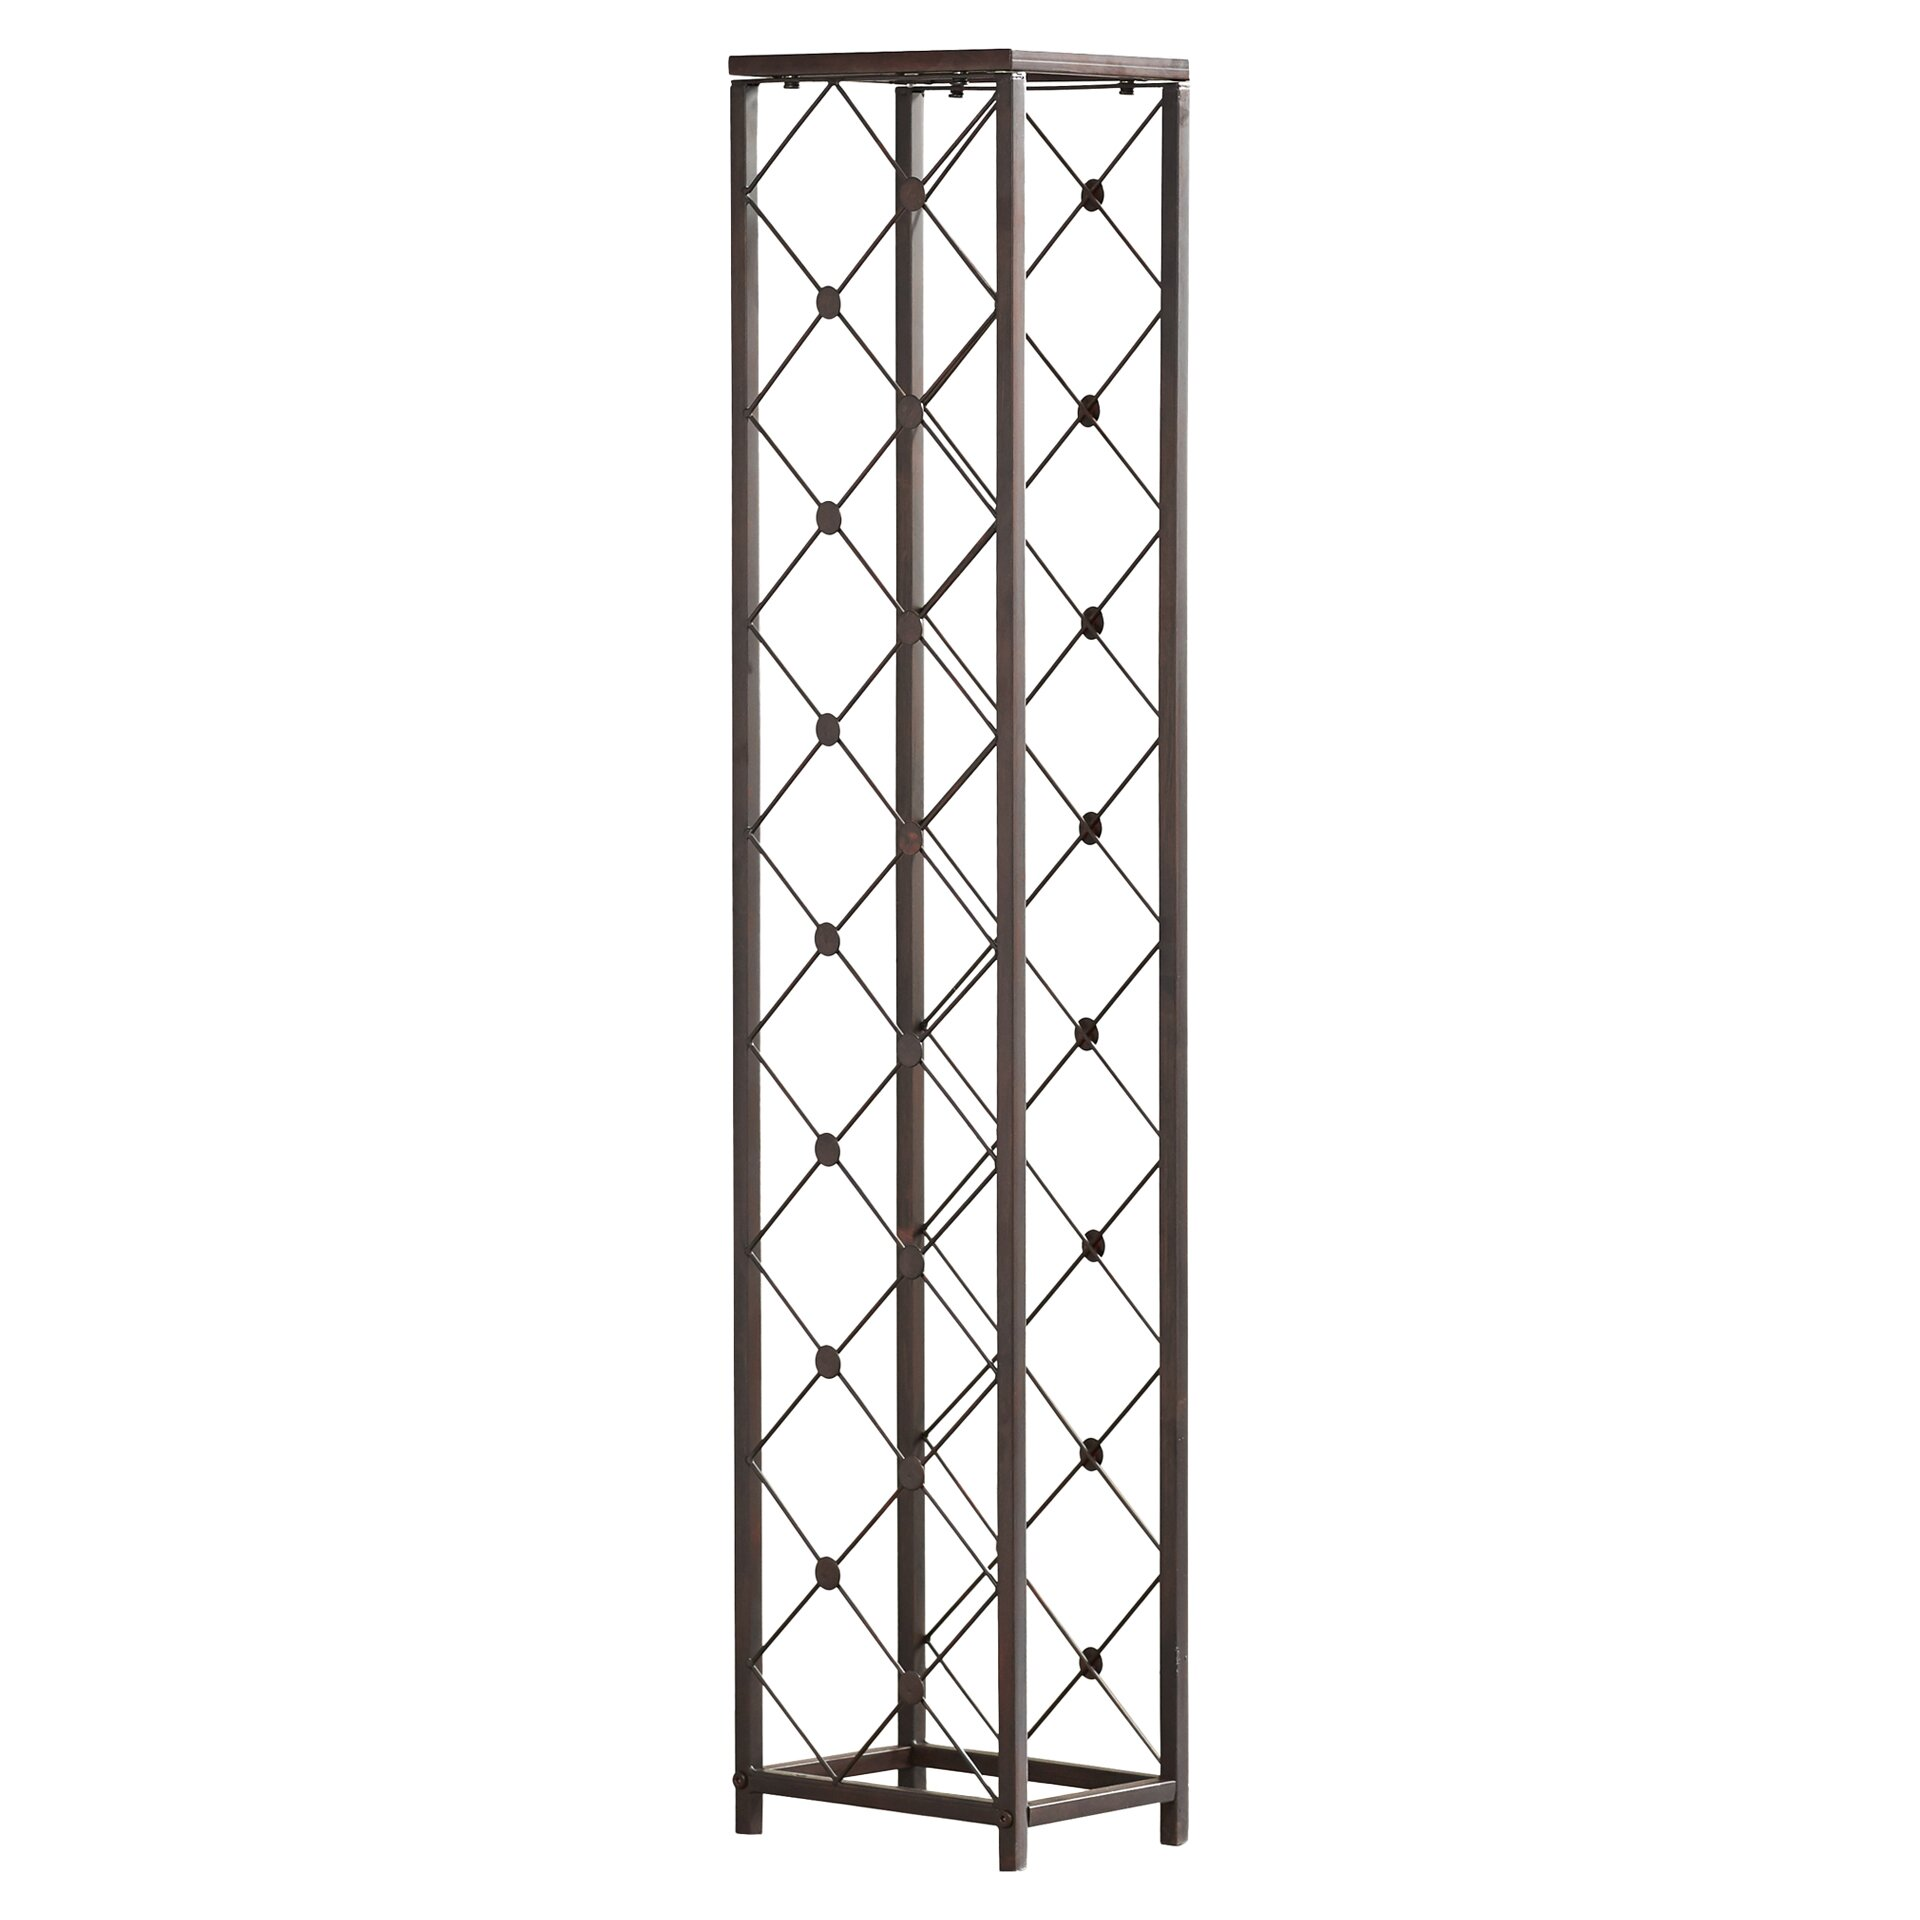 Brayden studio marinello 15 bottle floor wine rack for Floor wine rack